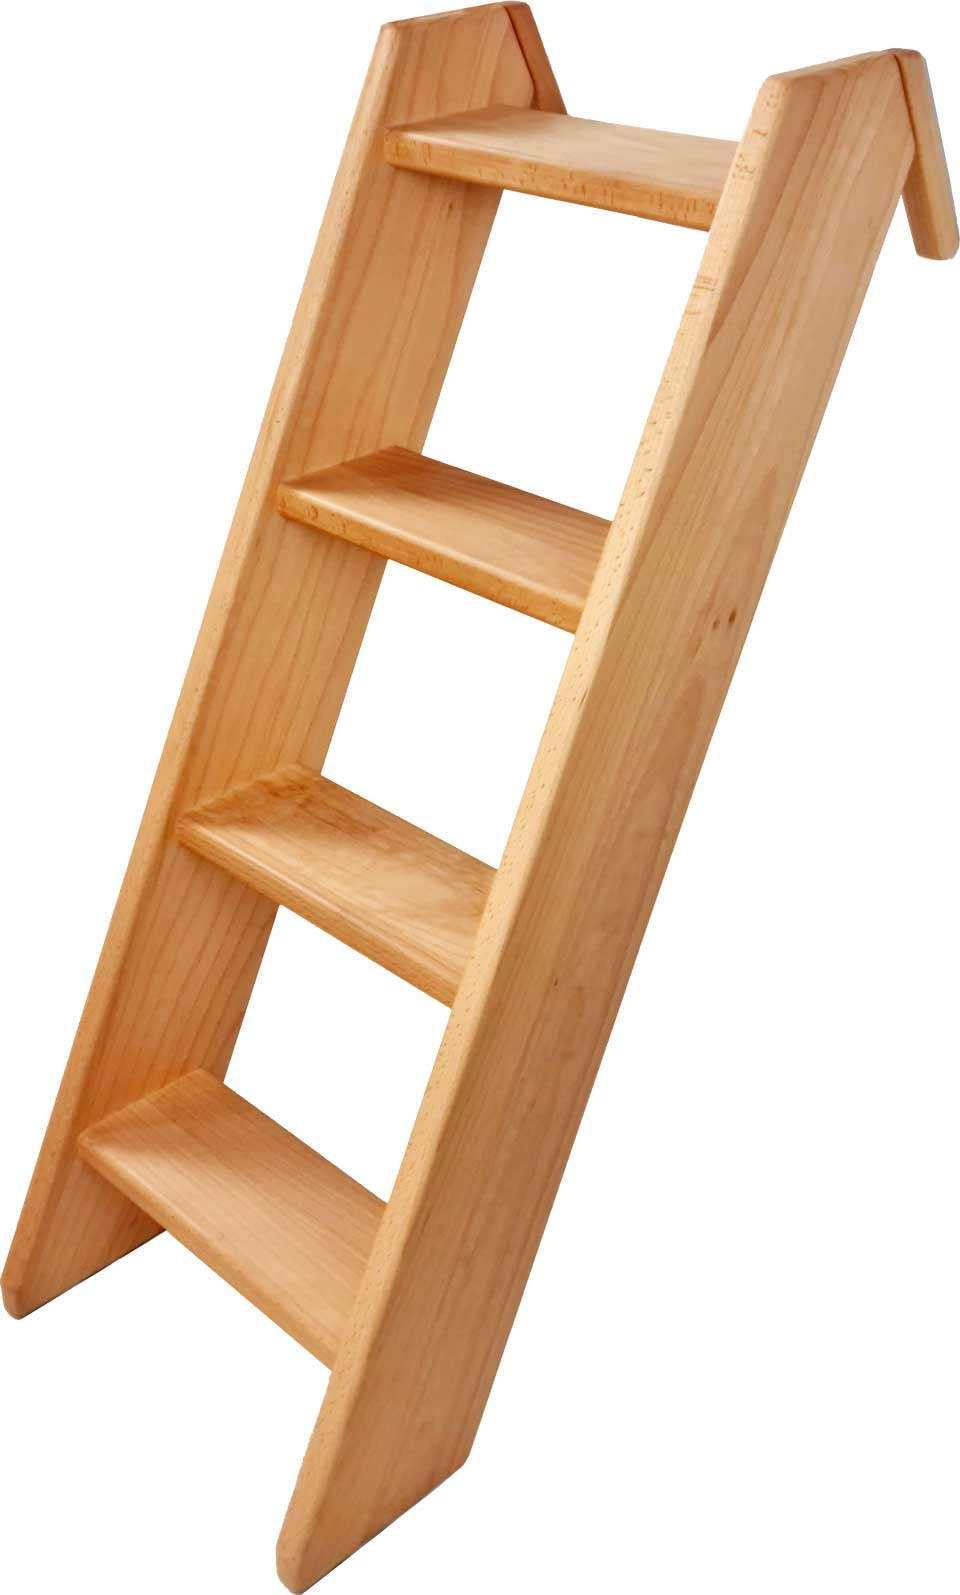 Inclined Ladder